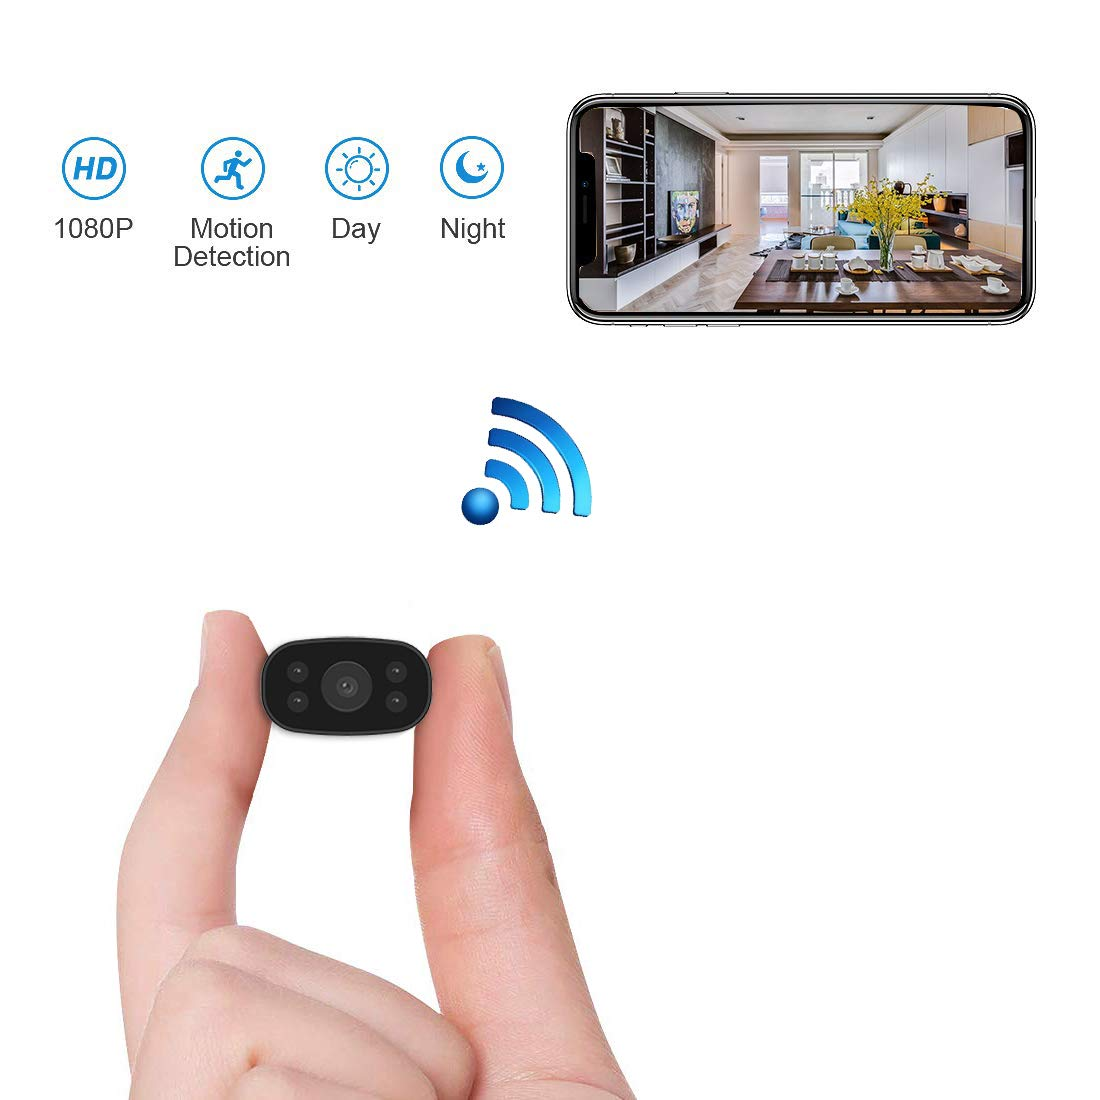 Hidden Security Cameras HUOMU Mini spy cam 1080P HD Wireless WiFi Remote View Tiny Home Surveillance Cameras Indoor Outdoor Video Recorder Smart Motion Detection by HUOMU